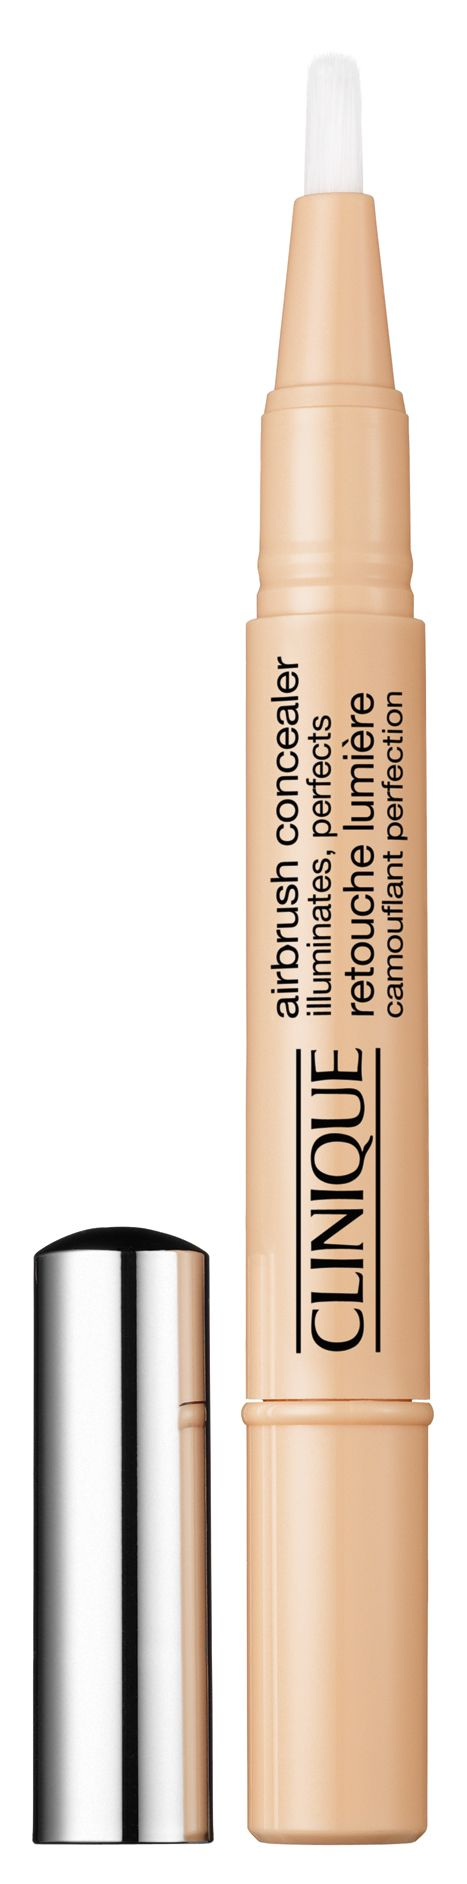 Airbrush Concealer All Skin Types